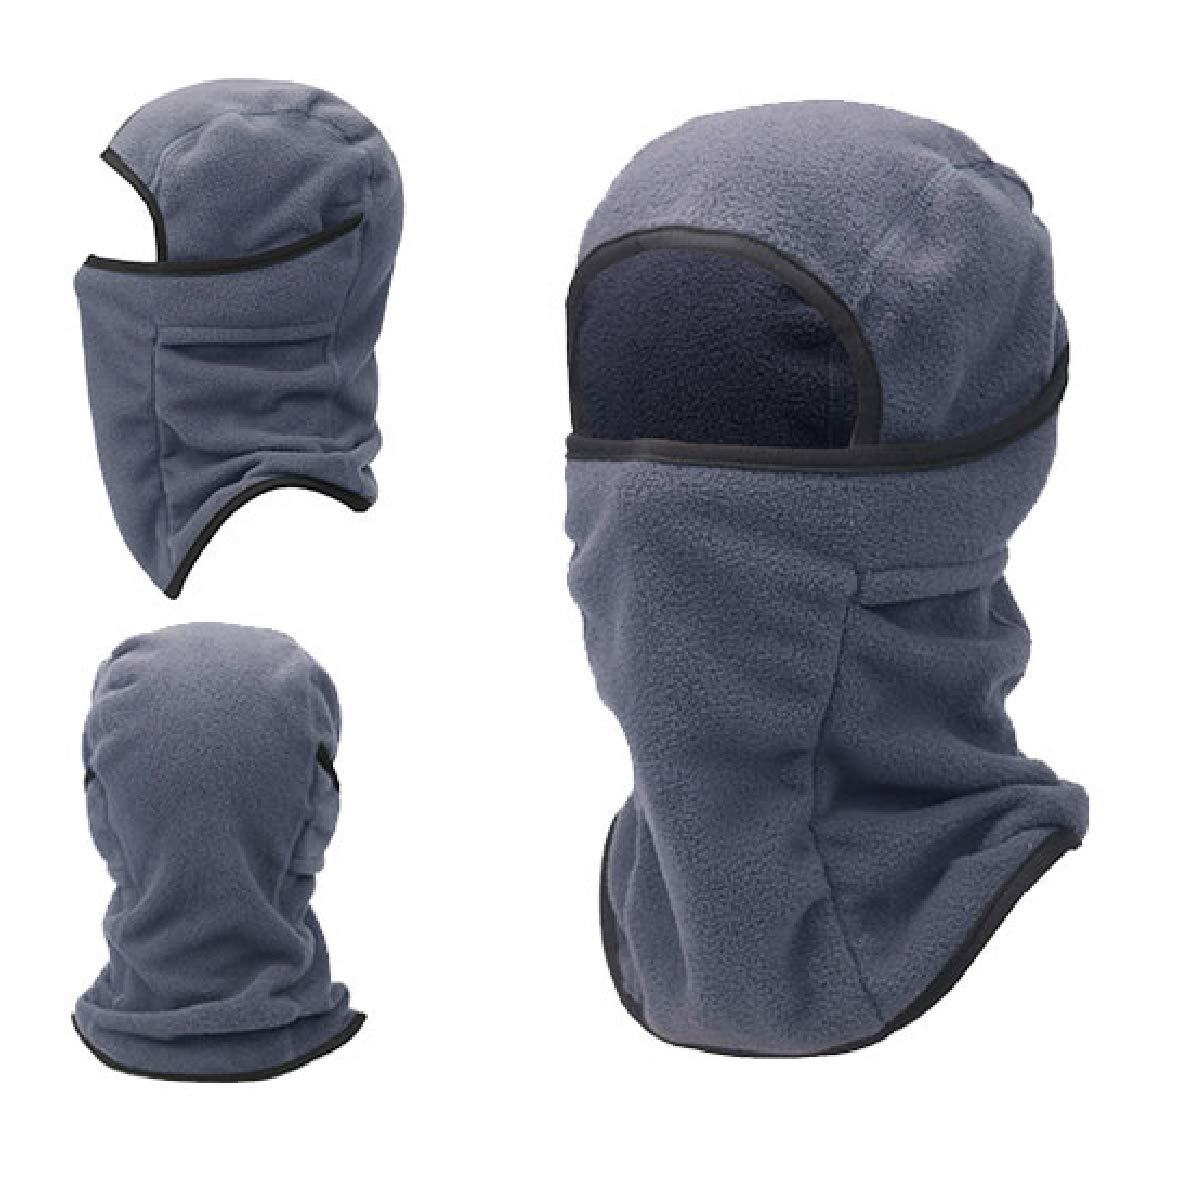 f02c75438 Hats & Caps TRIWONDER Balaclava Hood Hat Thermal Fleece Face Mask ...